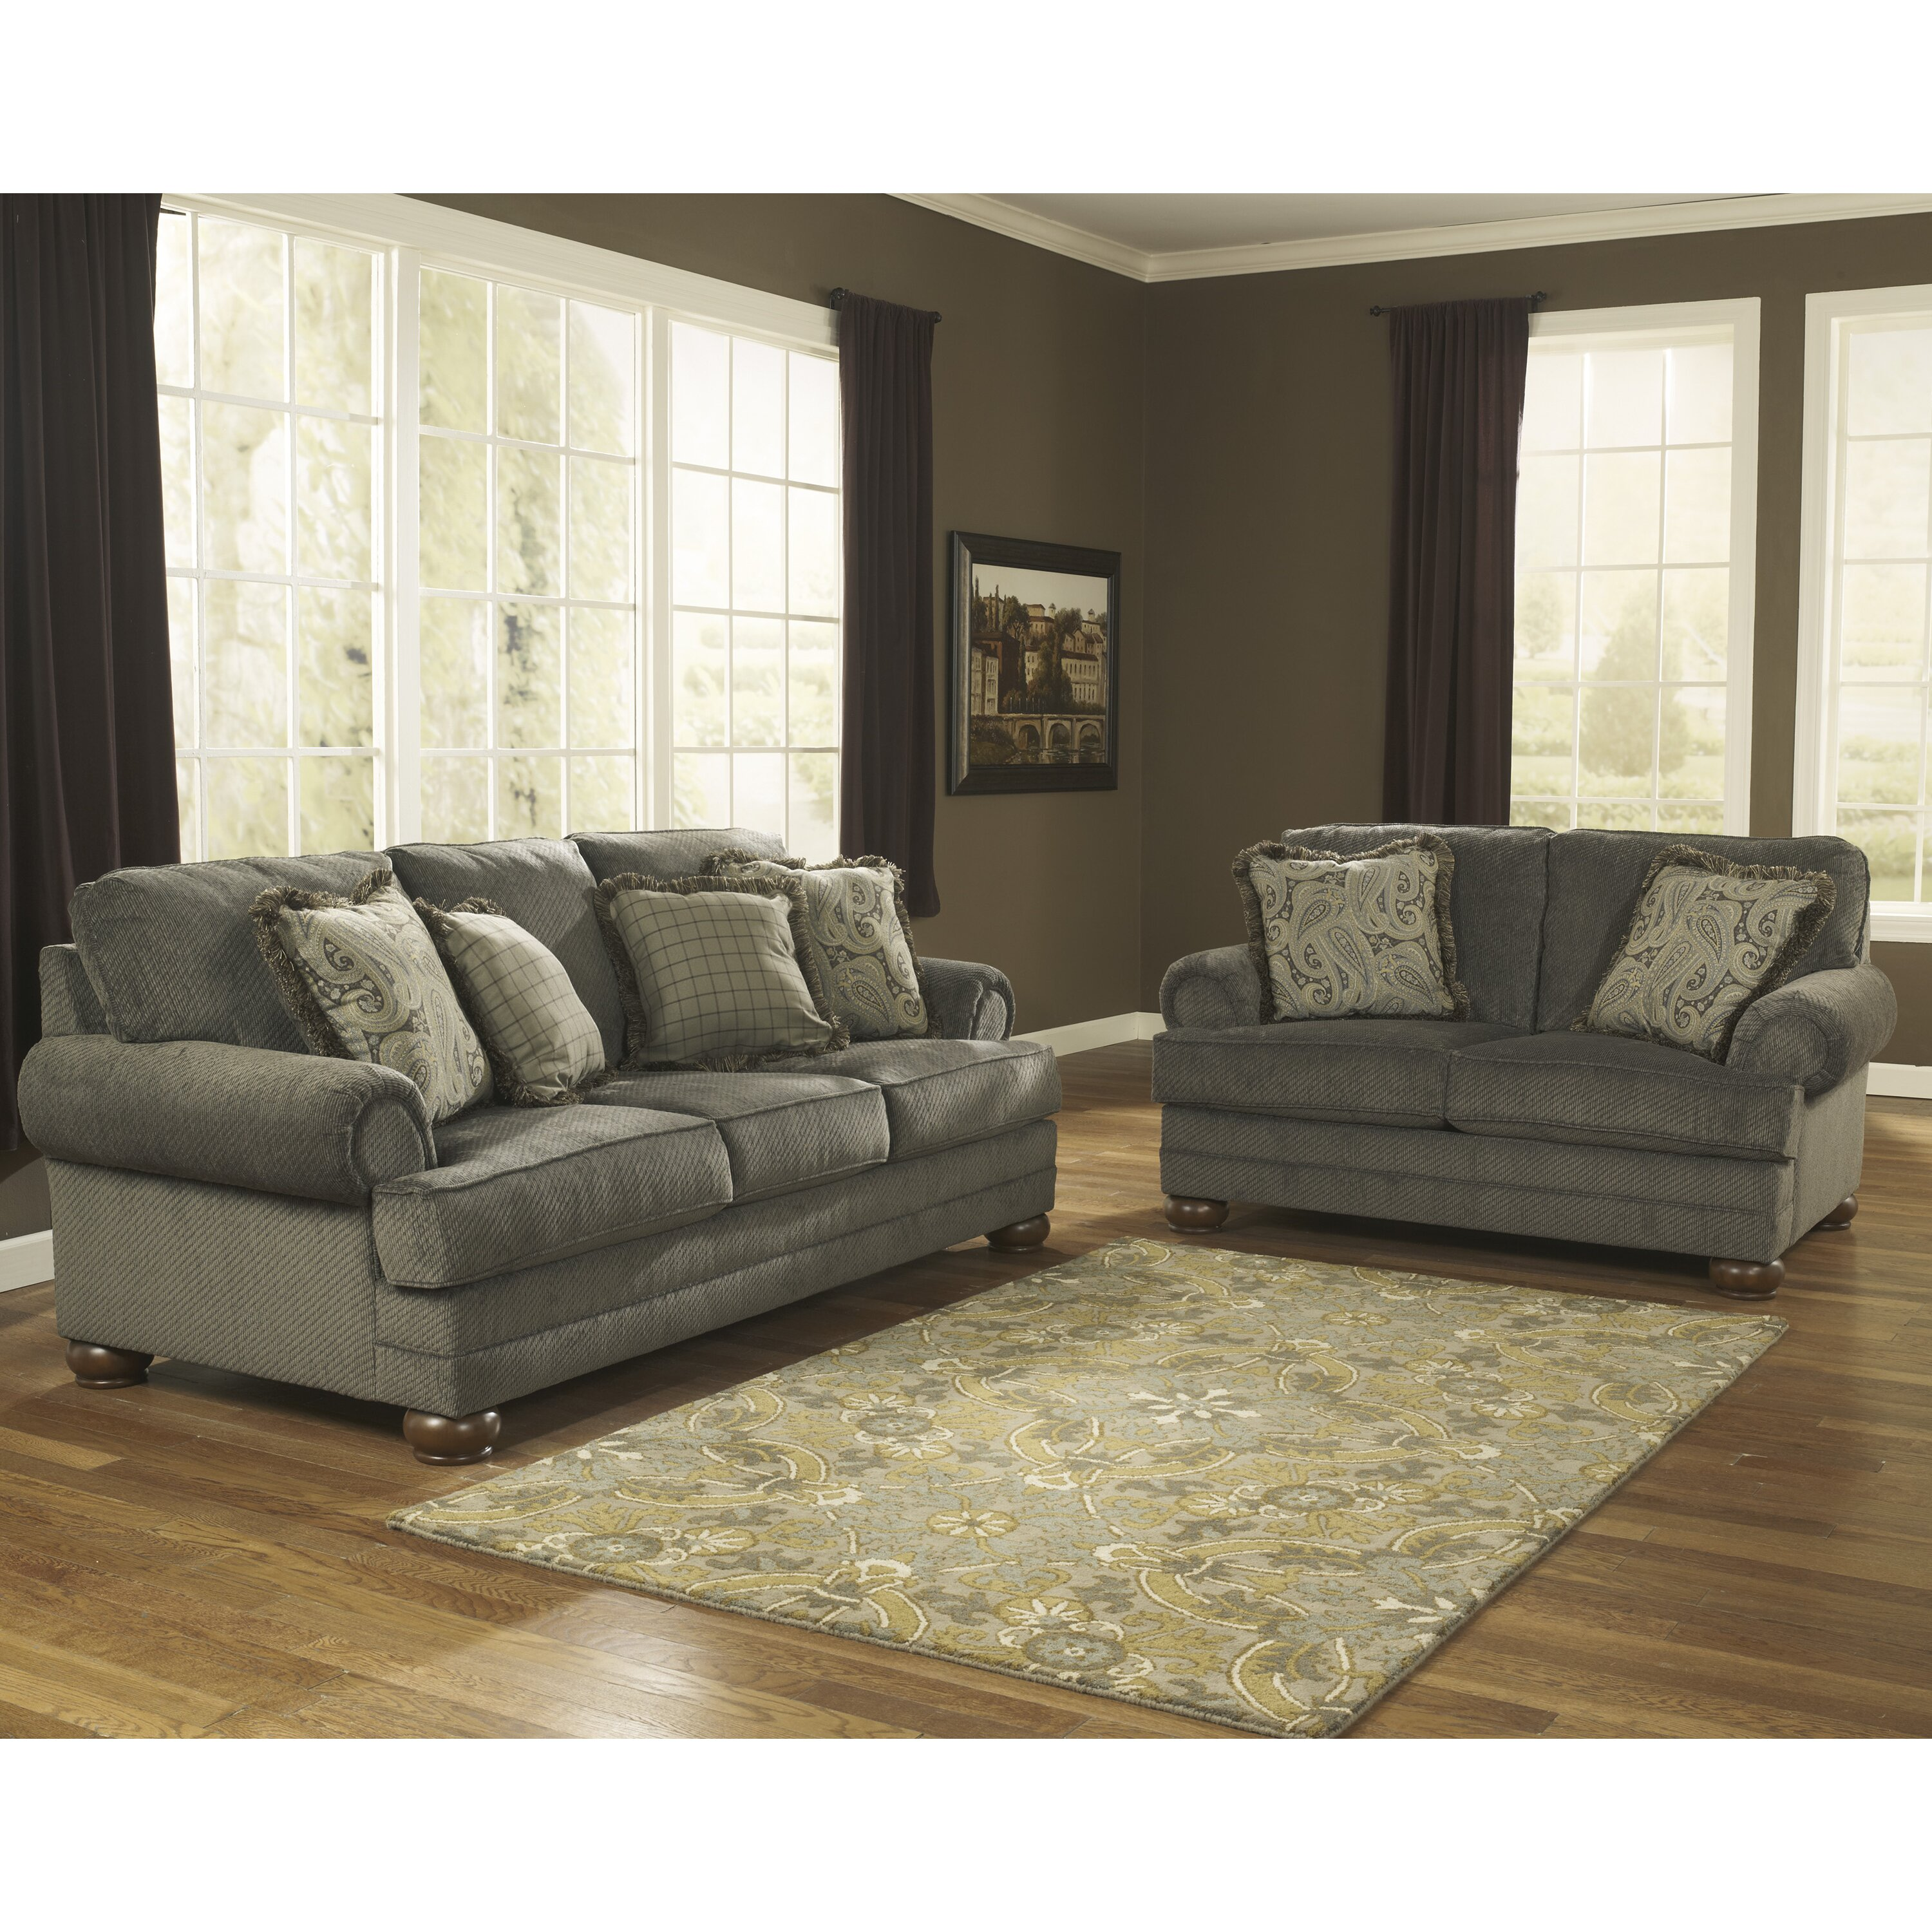 Signature Design By Ashley Hatton Living Room Collection